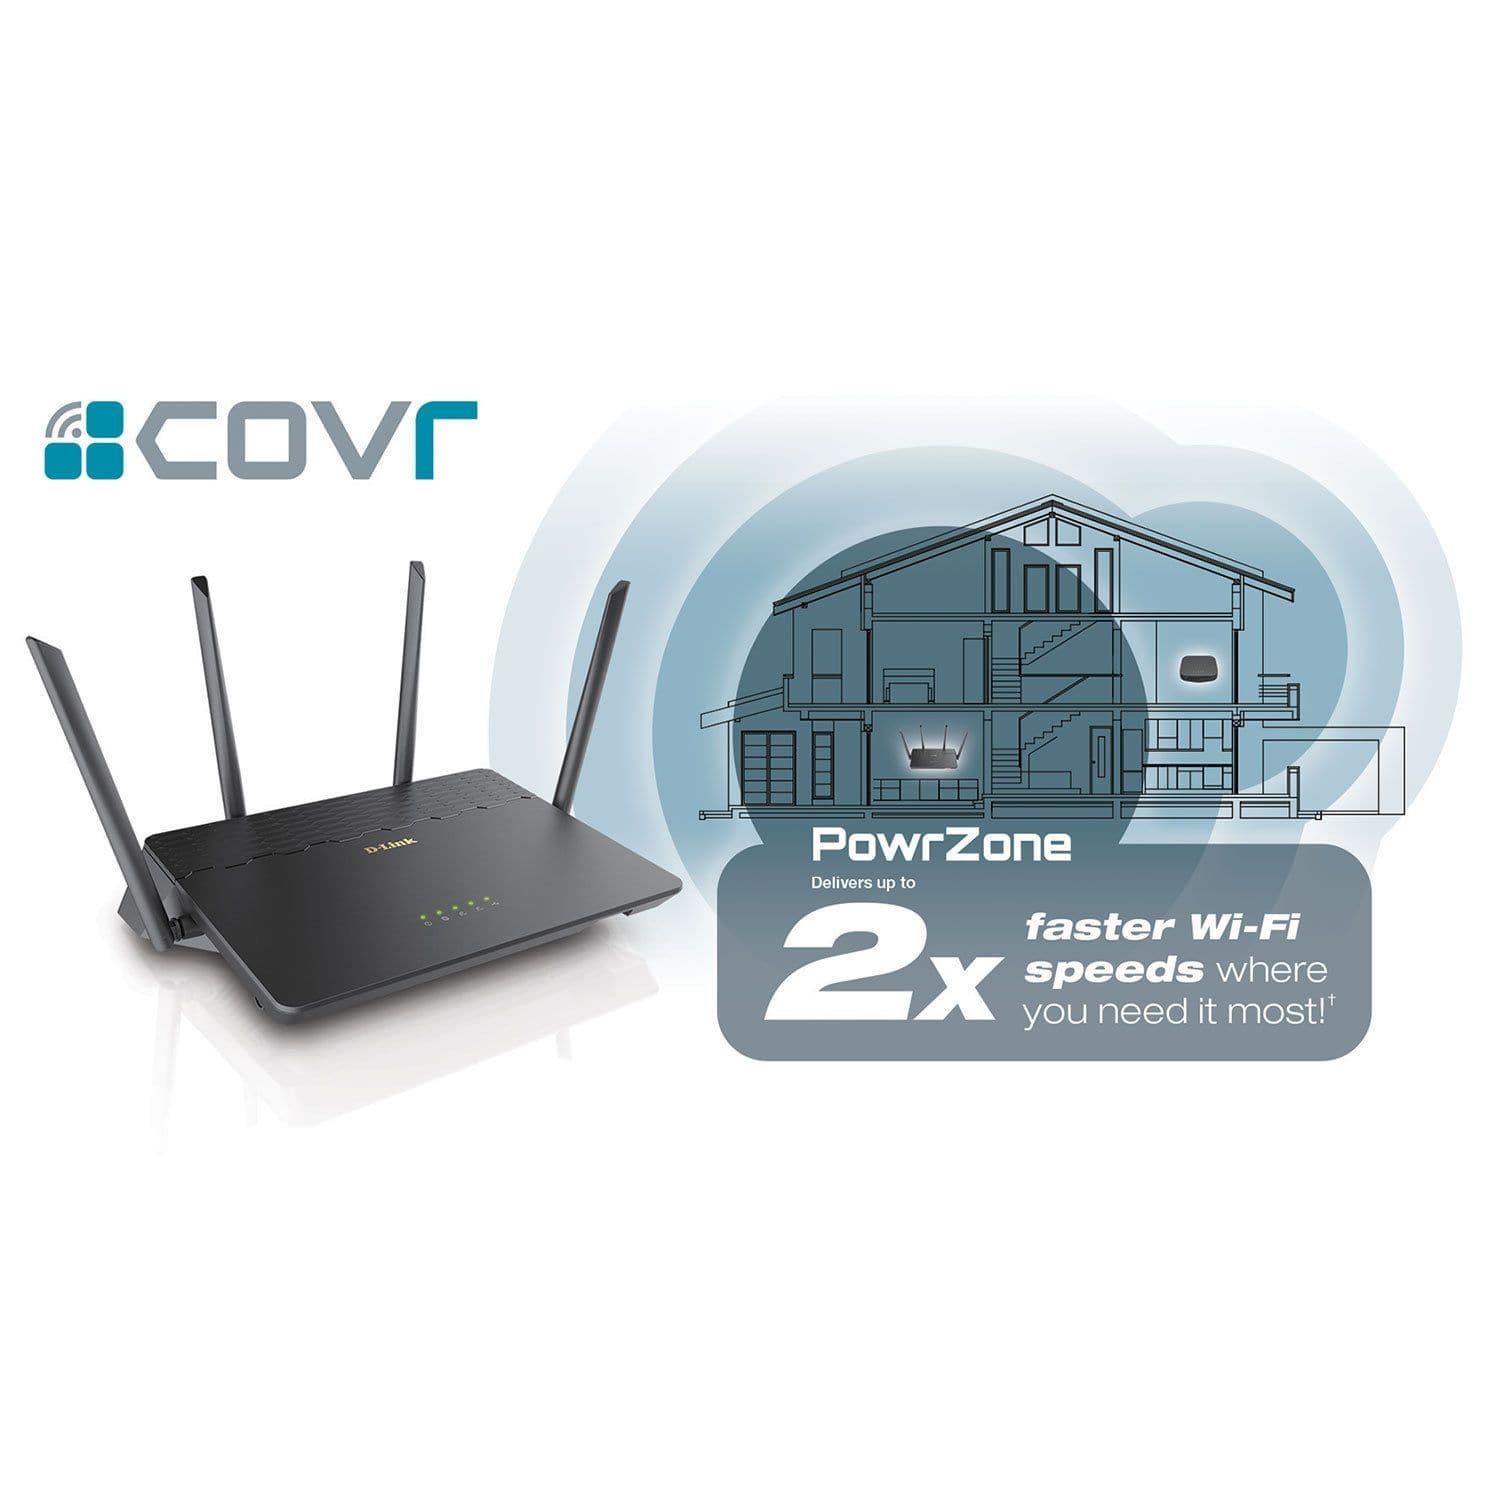 D-LINK Covr AC3900 Whole Home Wi-Fi Mesh System (COVR-3902) - Black